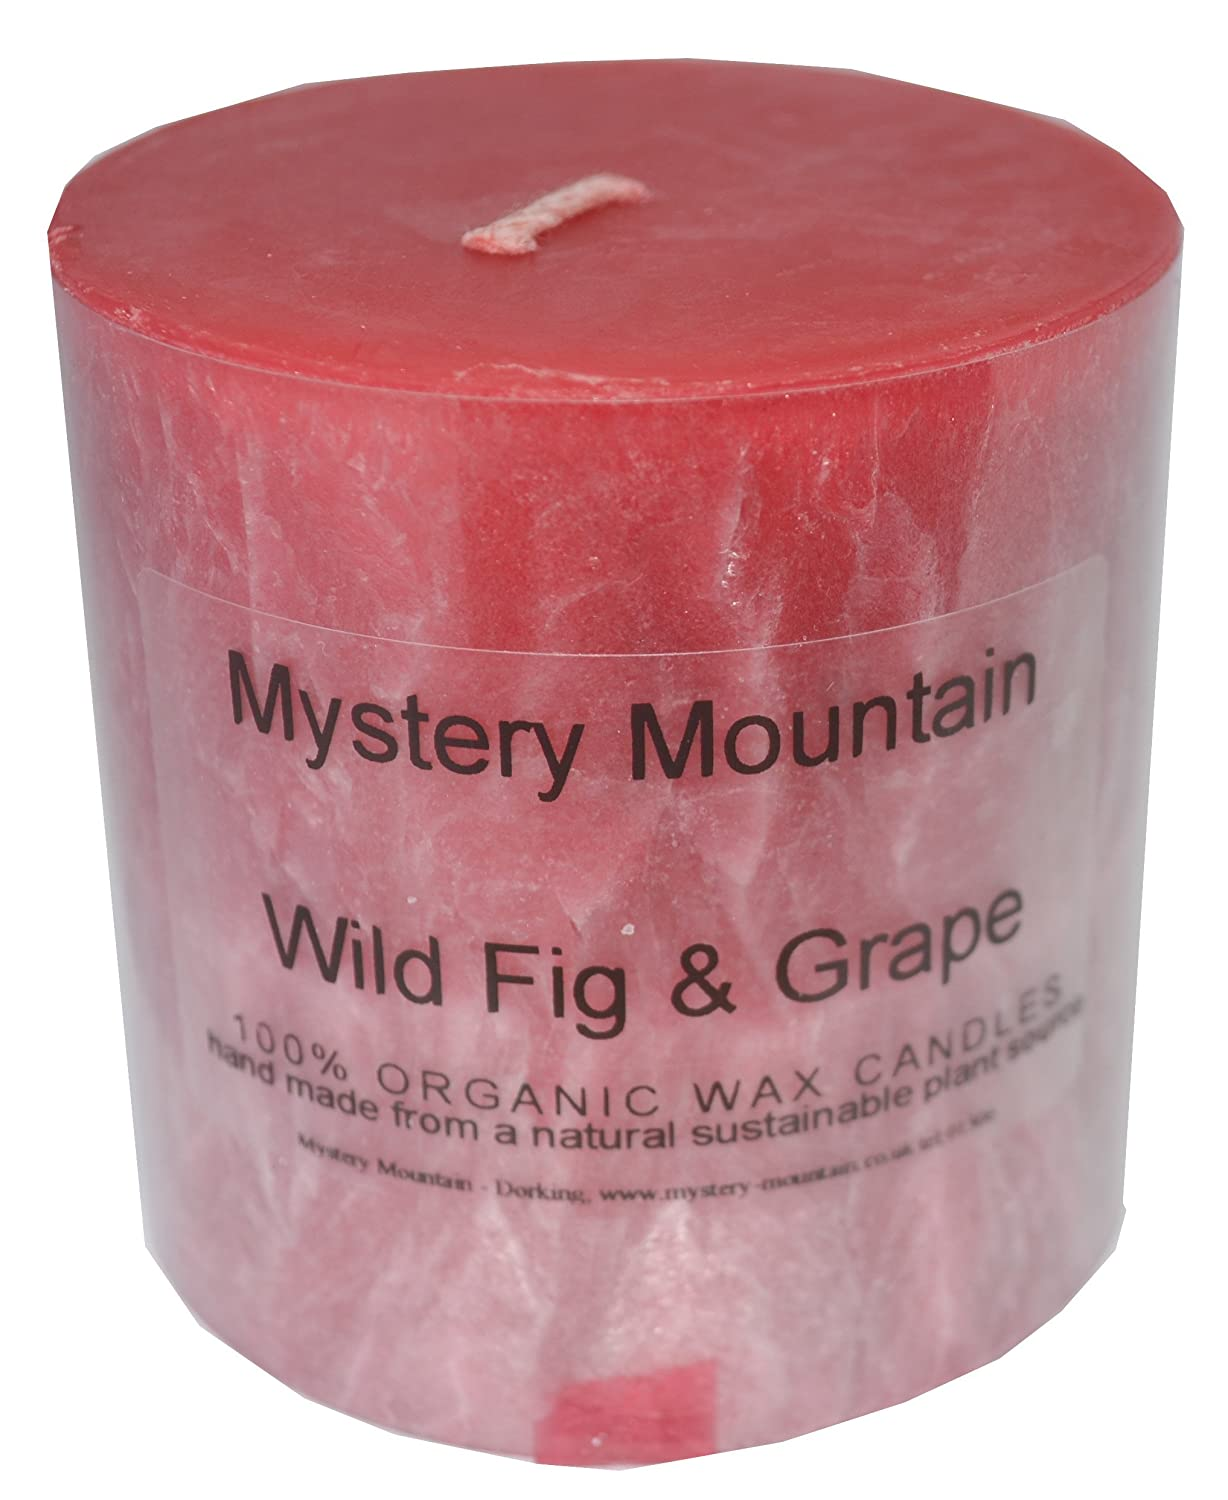 Mystery Mountain Large Chunky Wild Fig and Grape Scented 100% Organic Plant Wax Handmade Vegan Natural Pillar Candles-Approx 50 Hour Burning time-3 inchx 3 inch, Red, 7 x 7 x 7 cm 3